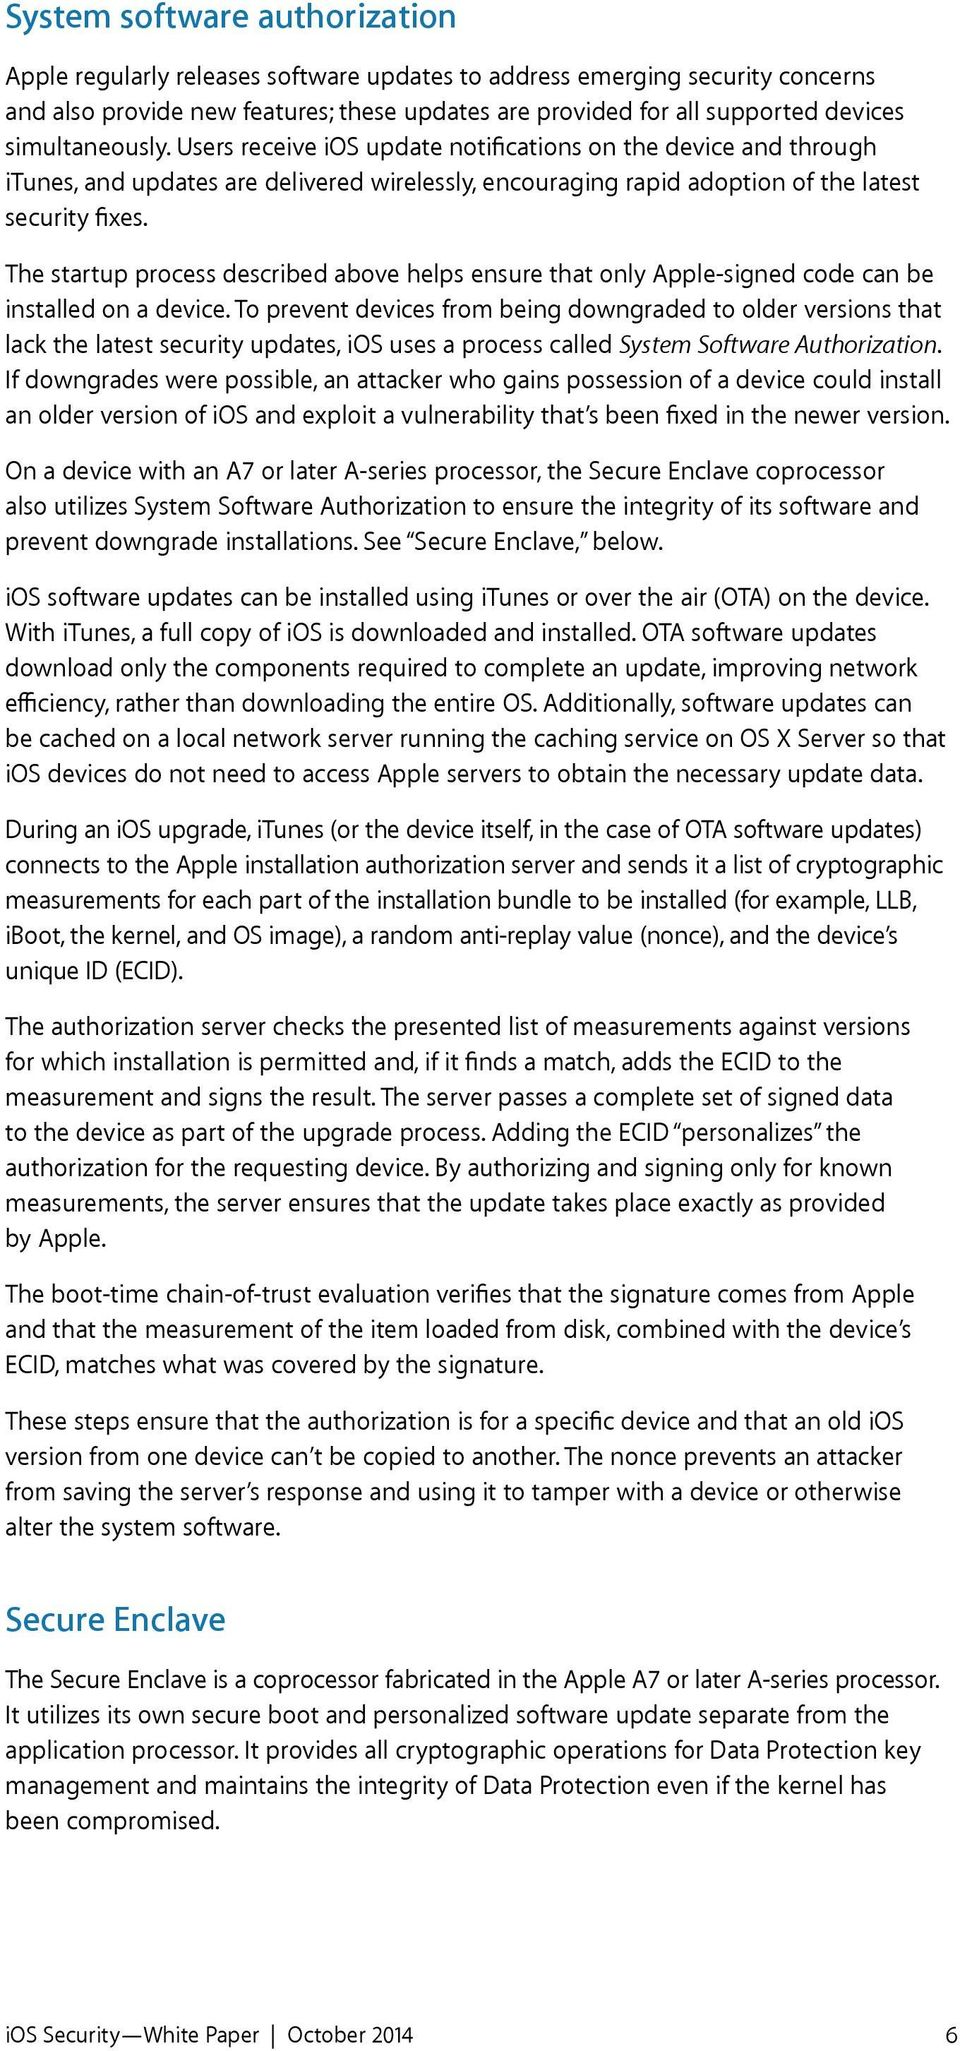 ios Security October 2014 ios 8 1 or later - PDF